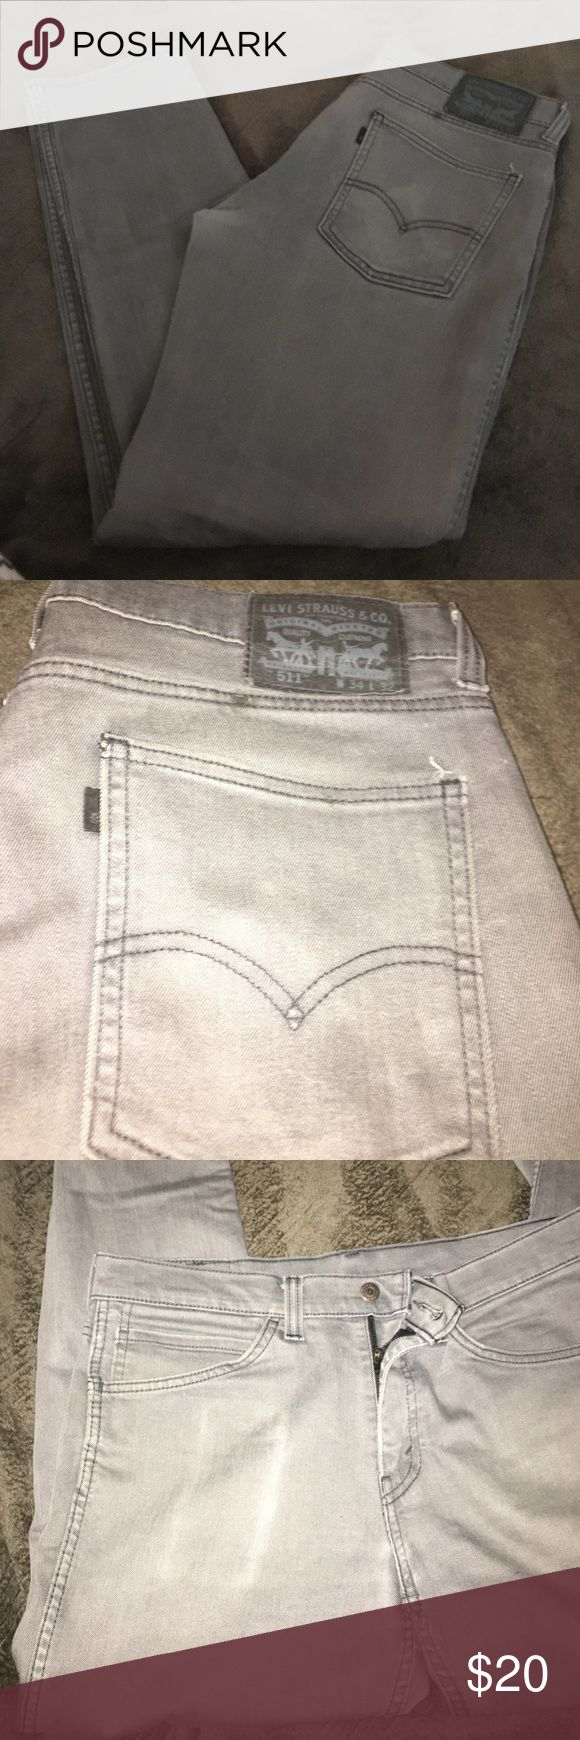 Levi Jeans Worn, pocket has imprint of iPhone (photo) other than that there is no flaws!  511s, w. 34 L 32 Levi's Jeans Straight